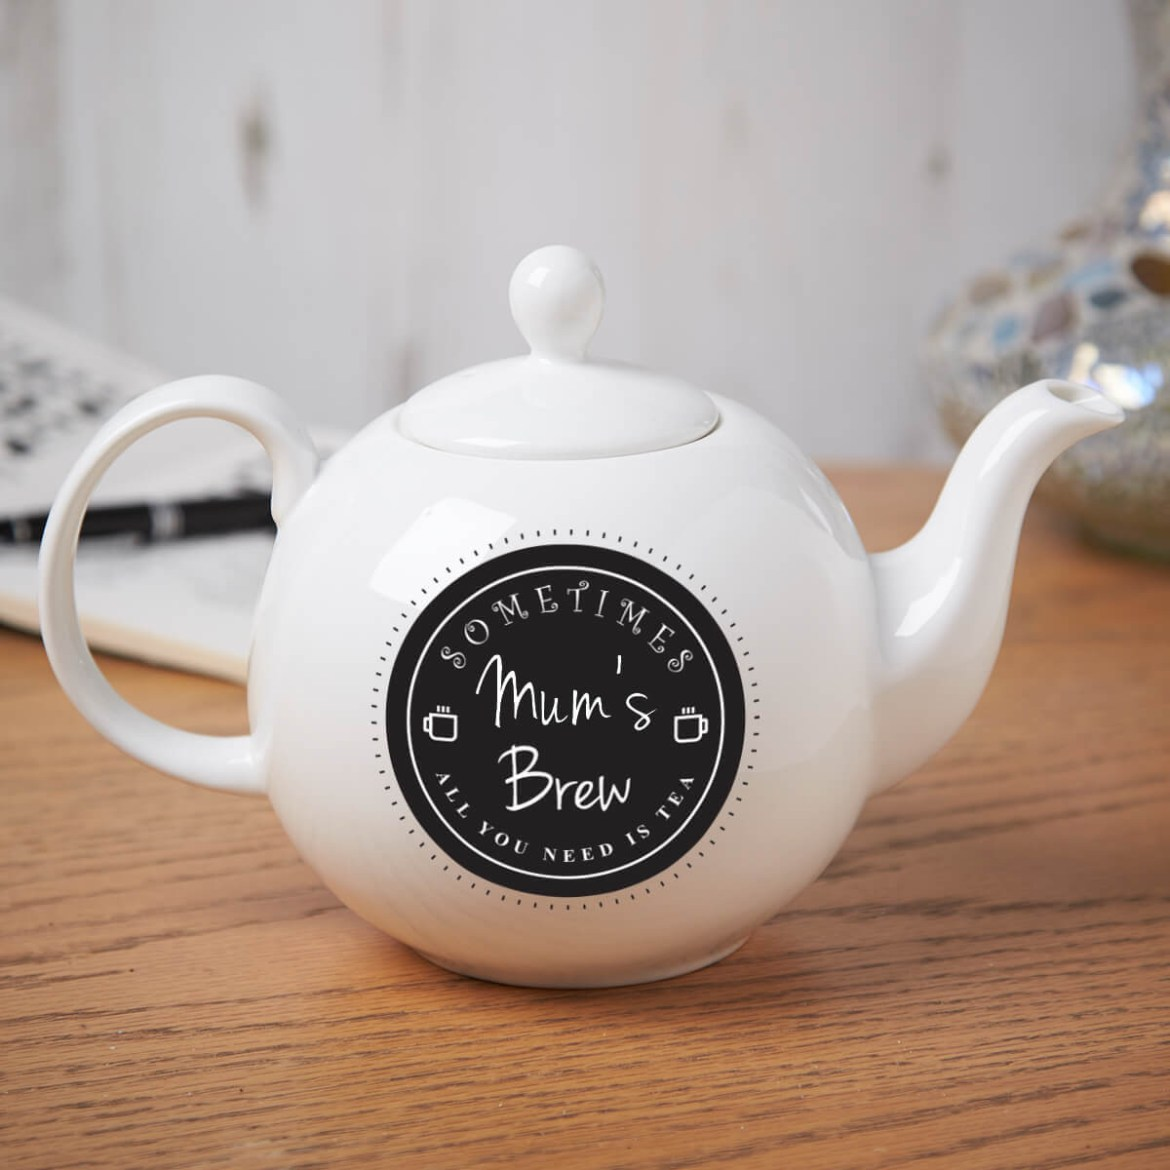 'All you need is Tea' Pot Belly Teapot